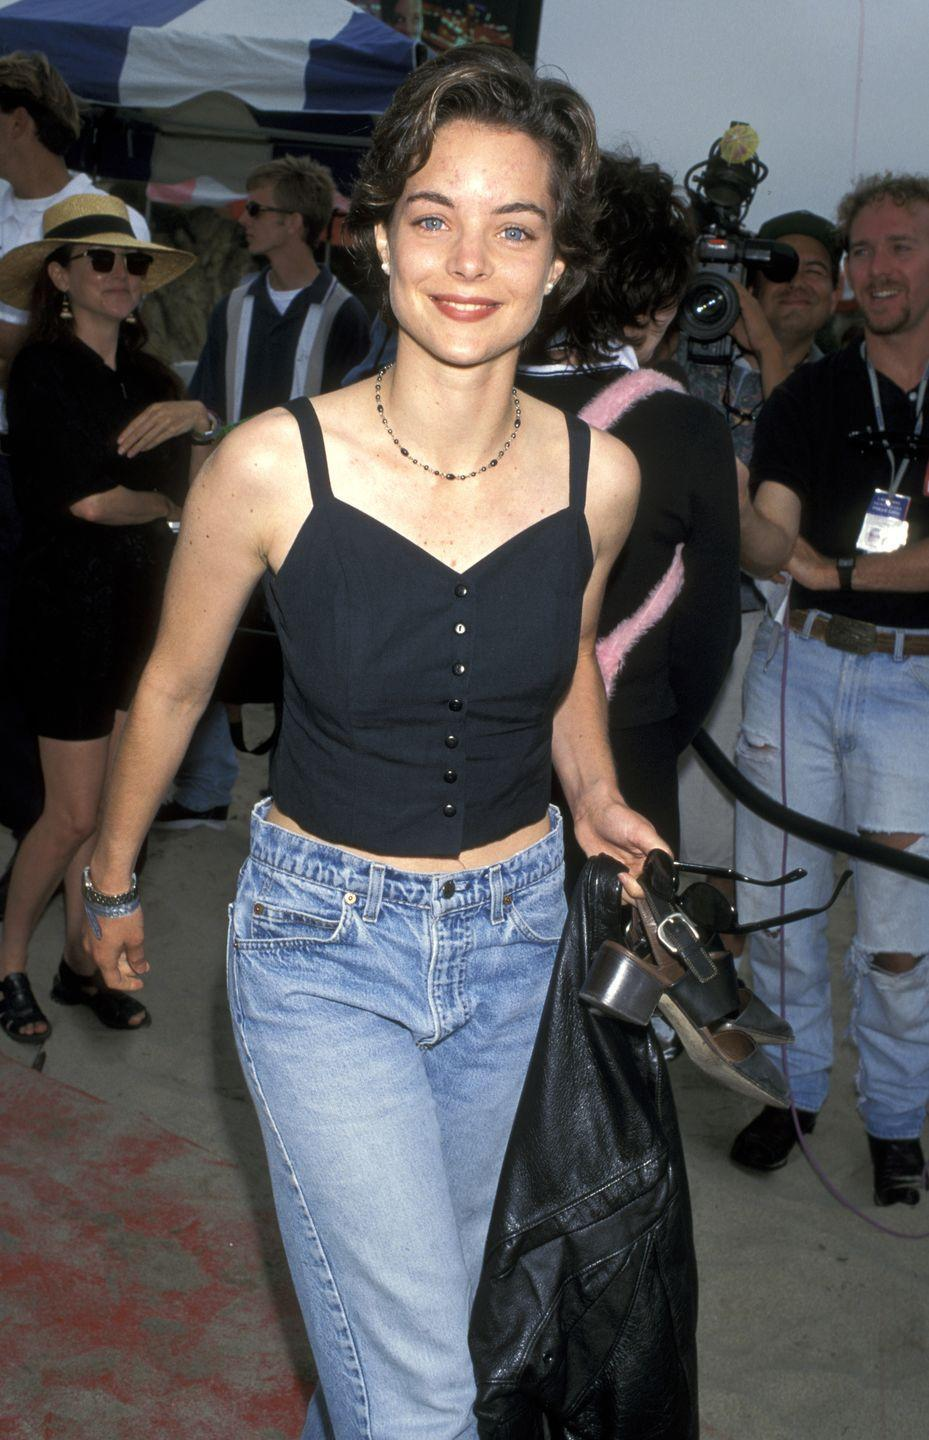 <p>Just a few months before she starred in <em>Father of the Bride Part II</em>, Williams graced the red carpet at the <em>Clueless</em> premiere wearing an extremely '90s outfit, choker, chunky heels, and all.</p>